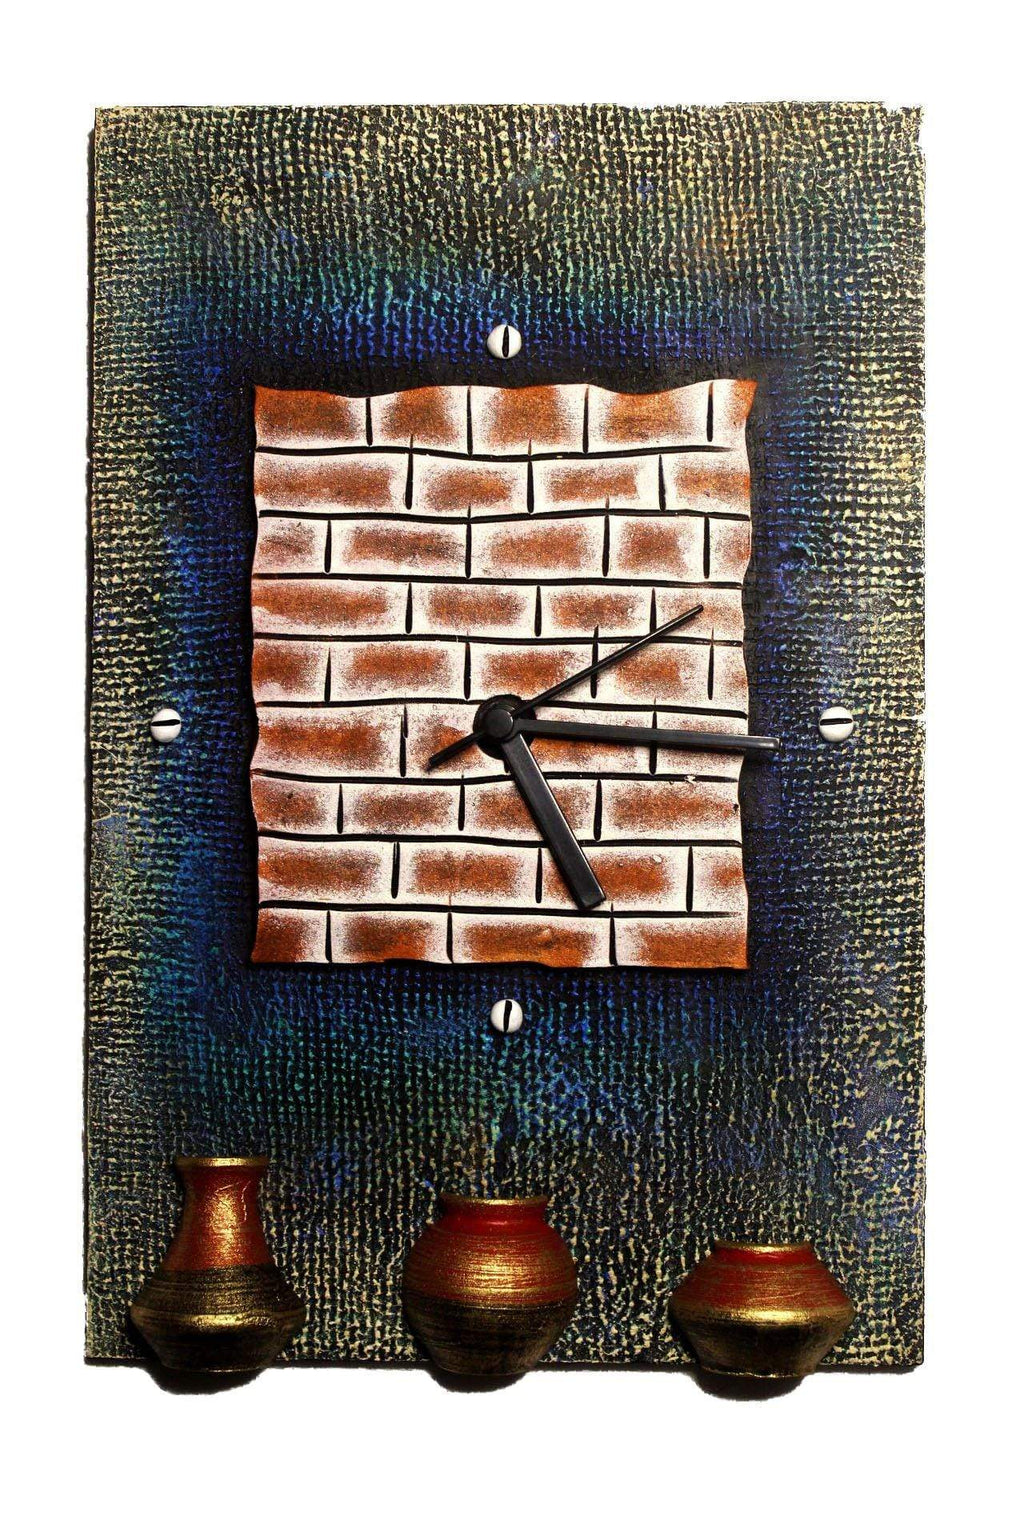 EthniCache Wall Clock Handmade Brick & Pots Wooden & Terracotta Wall Clock